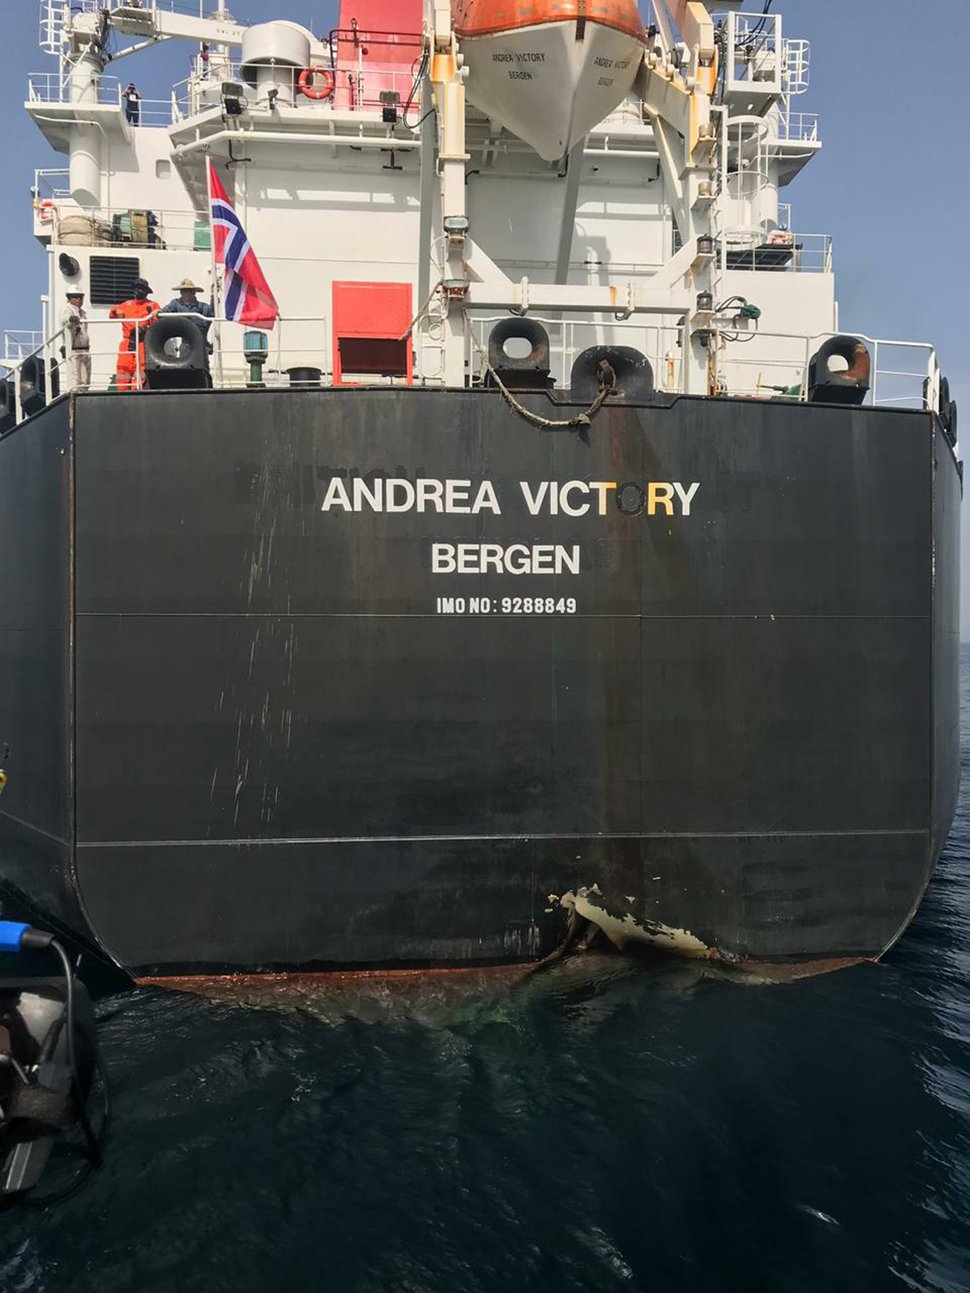 (United Arab Emirates National Media Council via AP) The Norwegian-flagged oil tanker MT Andrea Victory was damaged in what Gulf officials described Monday as a